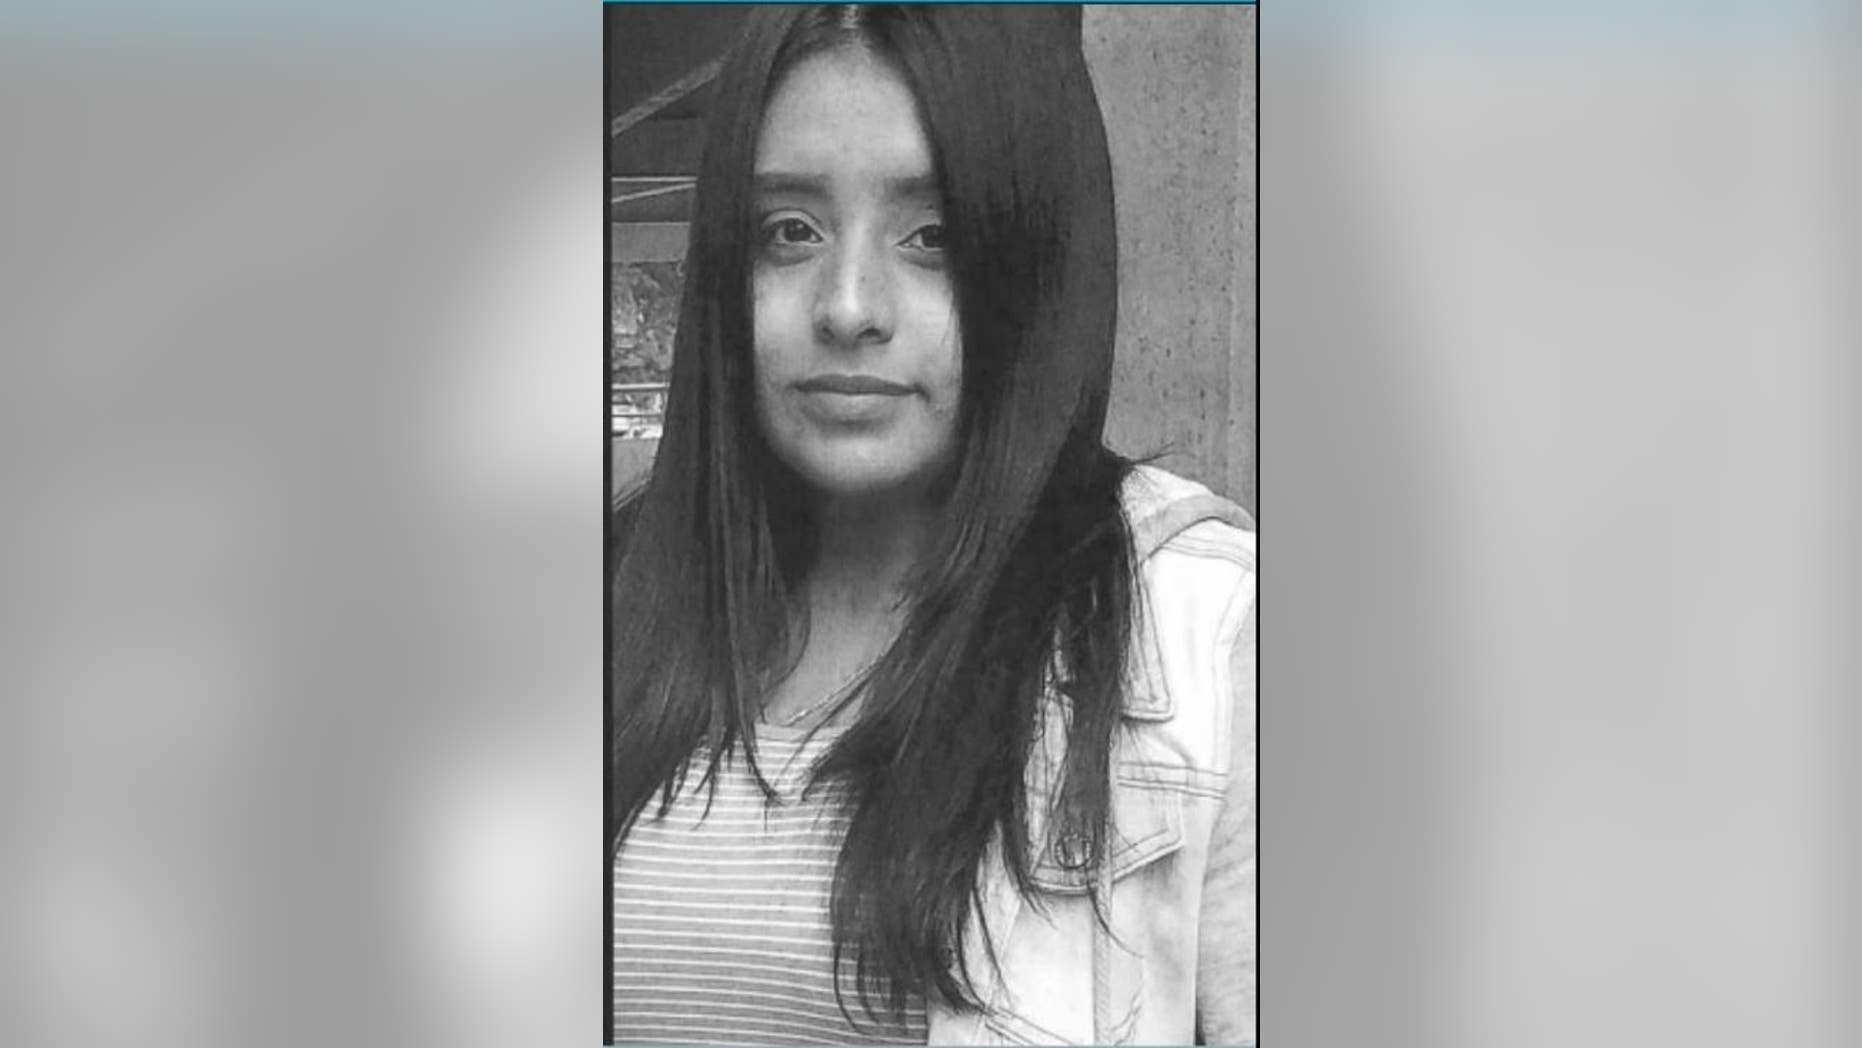 Sinahi Aguilar-Cruz, 16, was last seen at her home at 11:30 p.m. Saturday, police said.